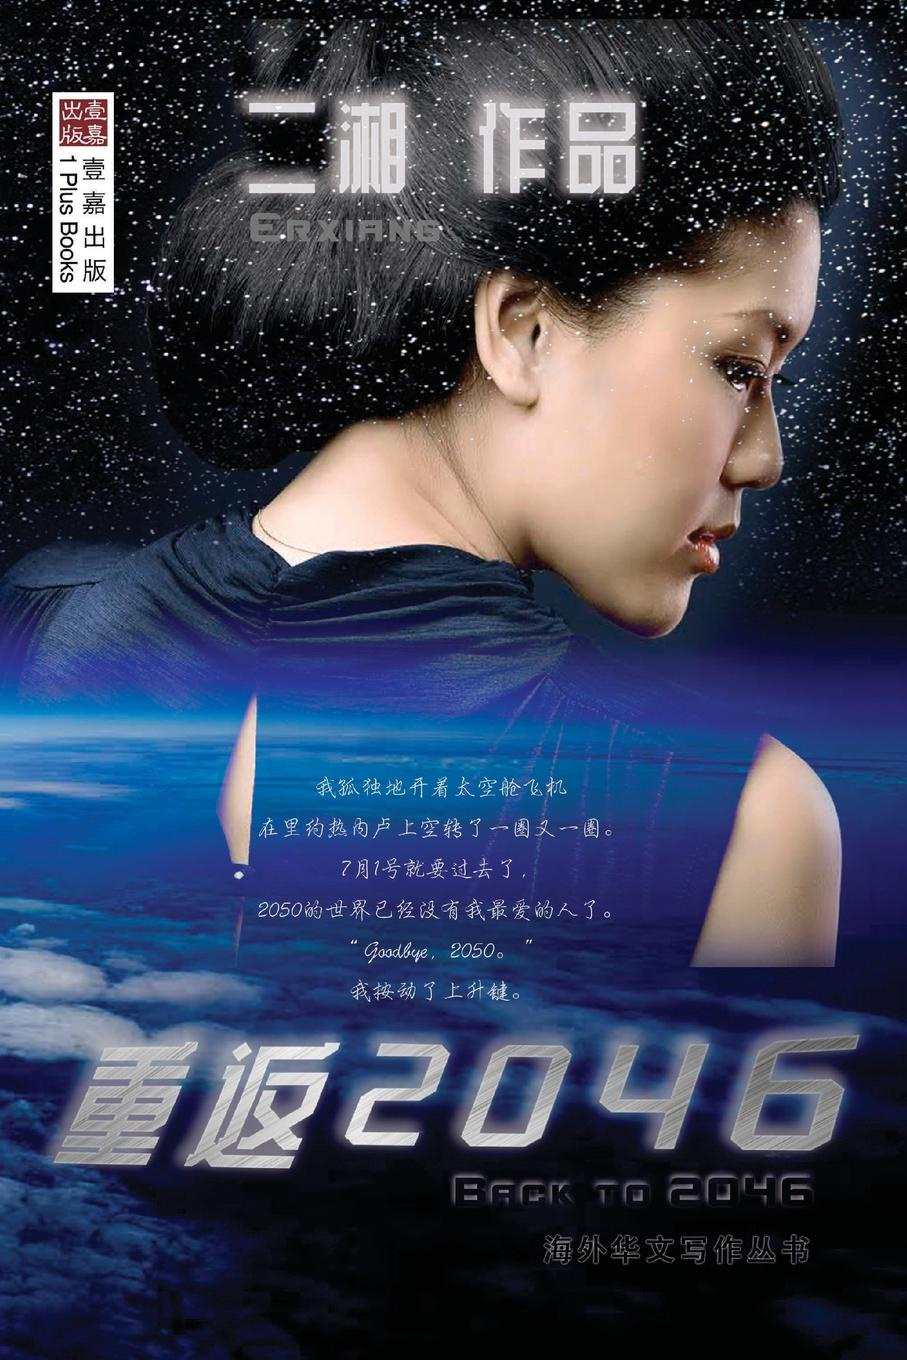 二湘 ..2046 (Back to 2046,Chinese Edition) 赚钱更要赚人生